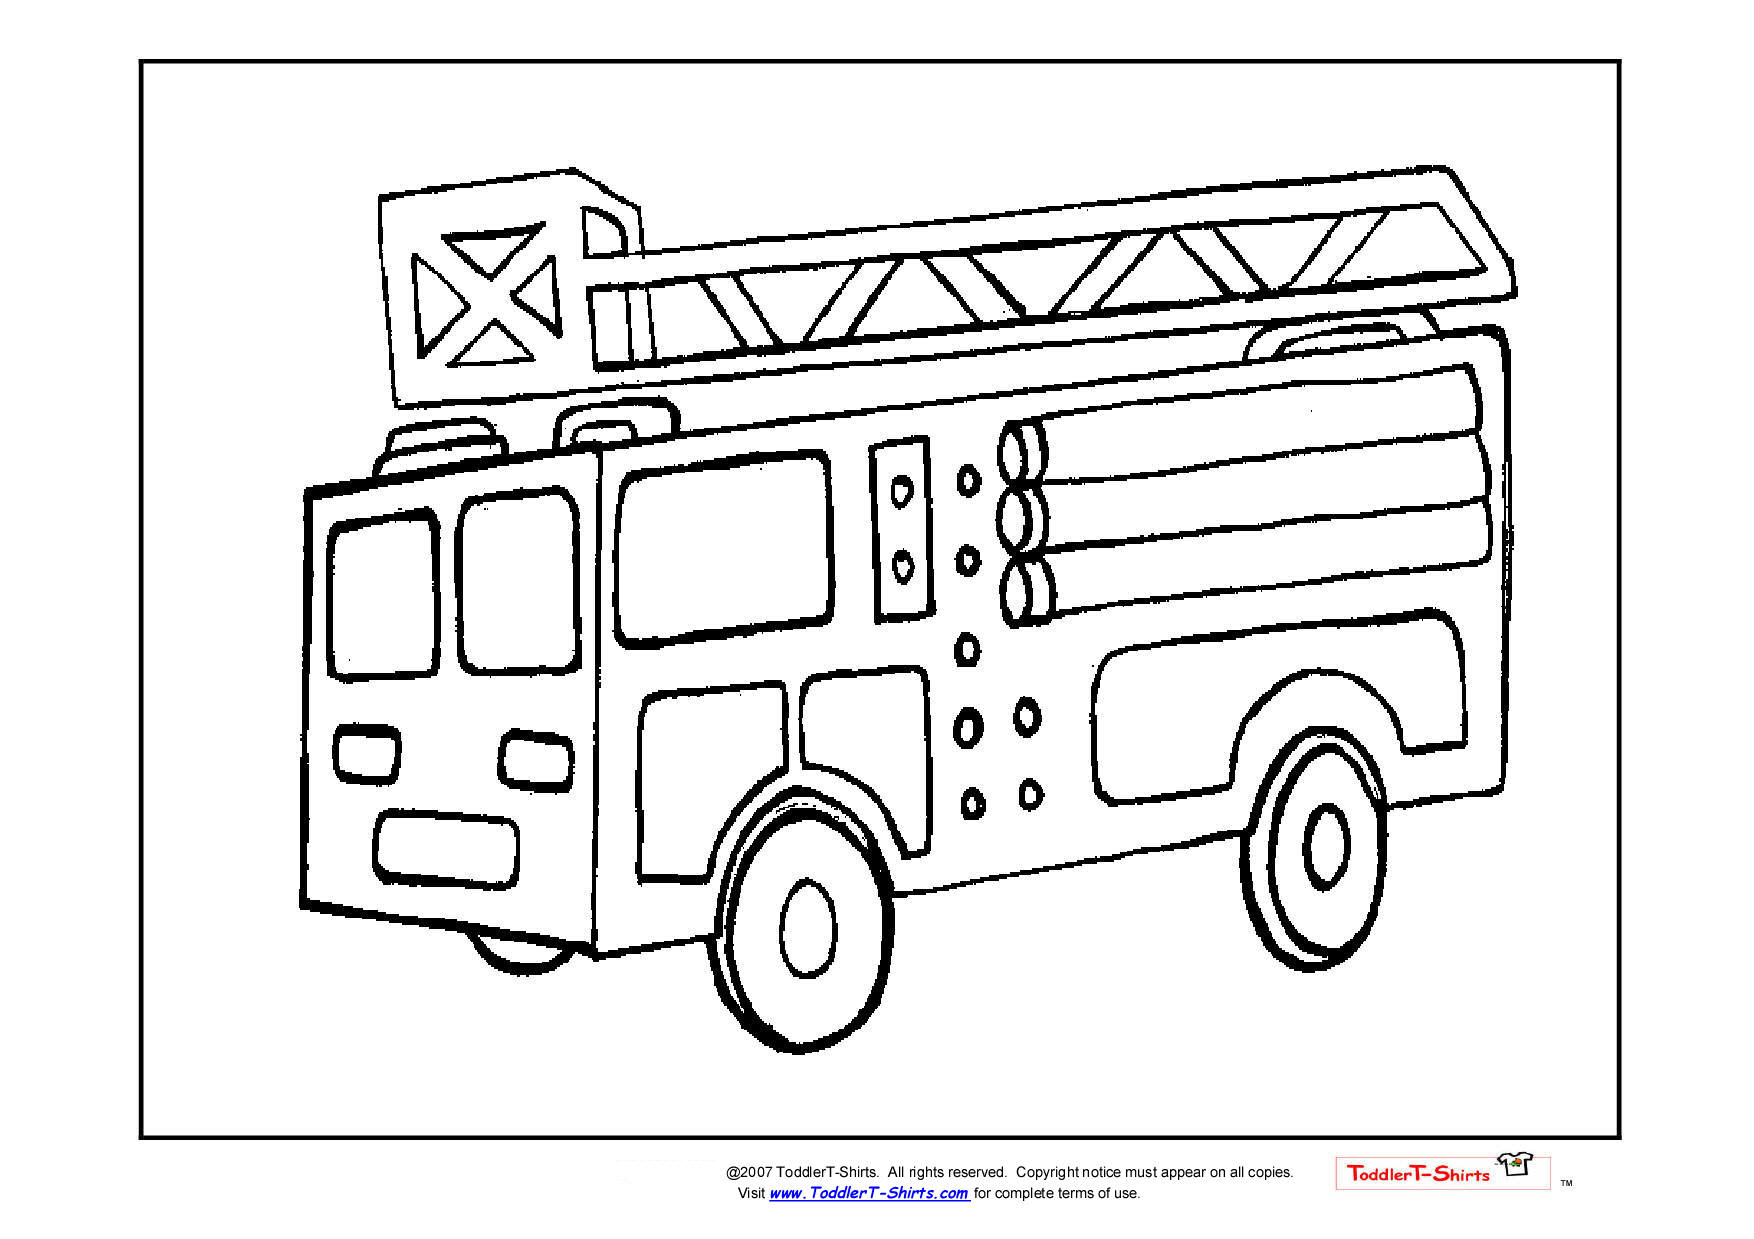 free coloring pages fire engines - photo#8